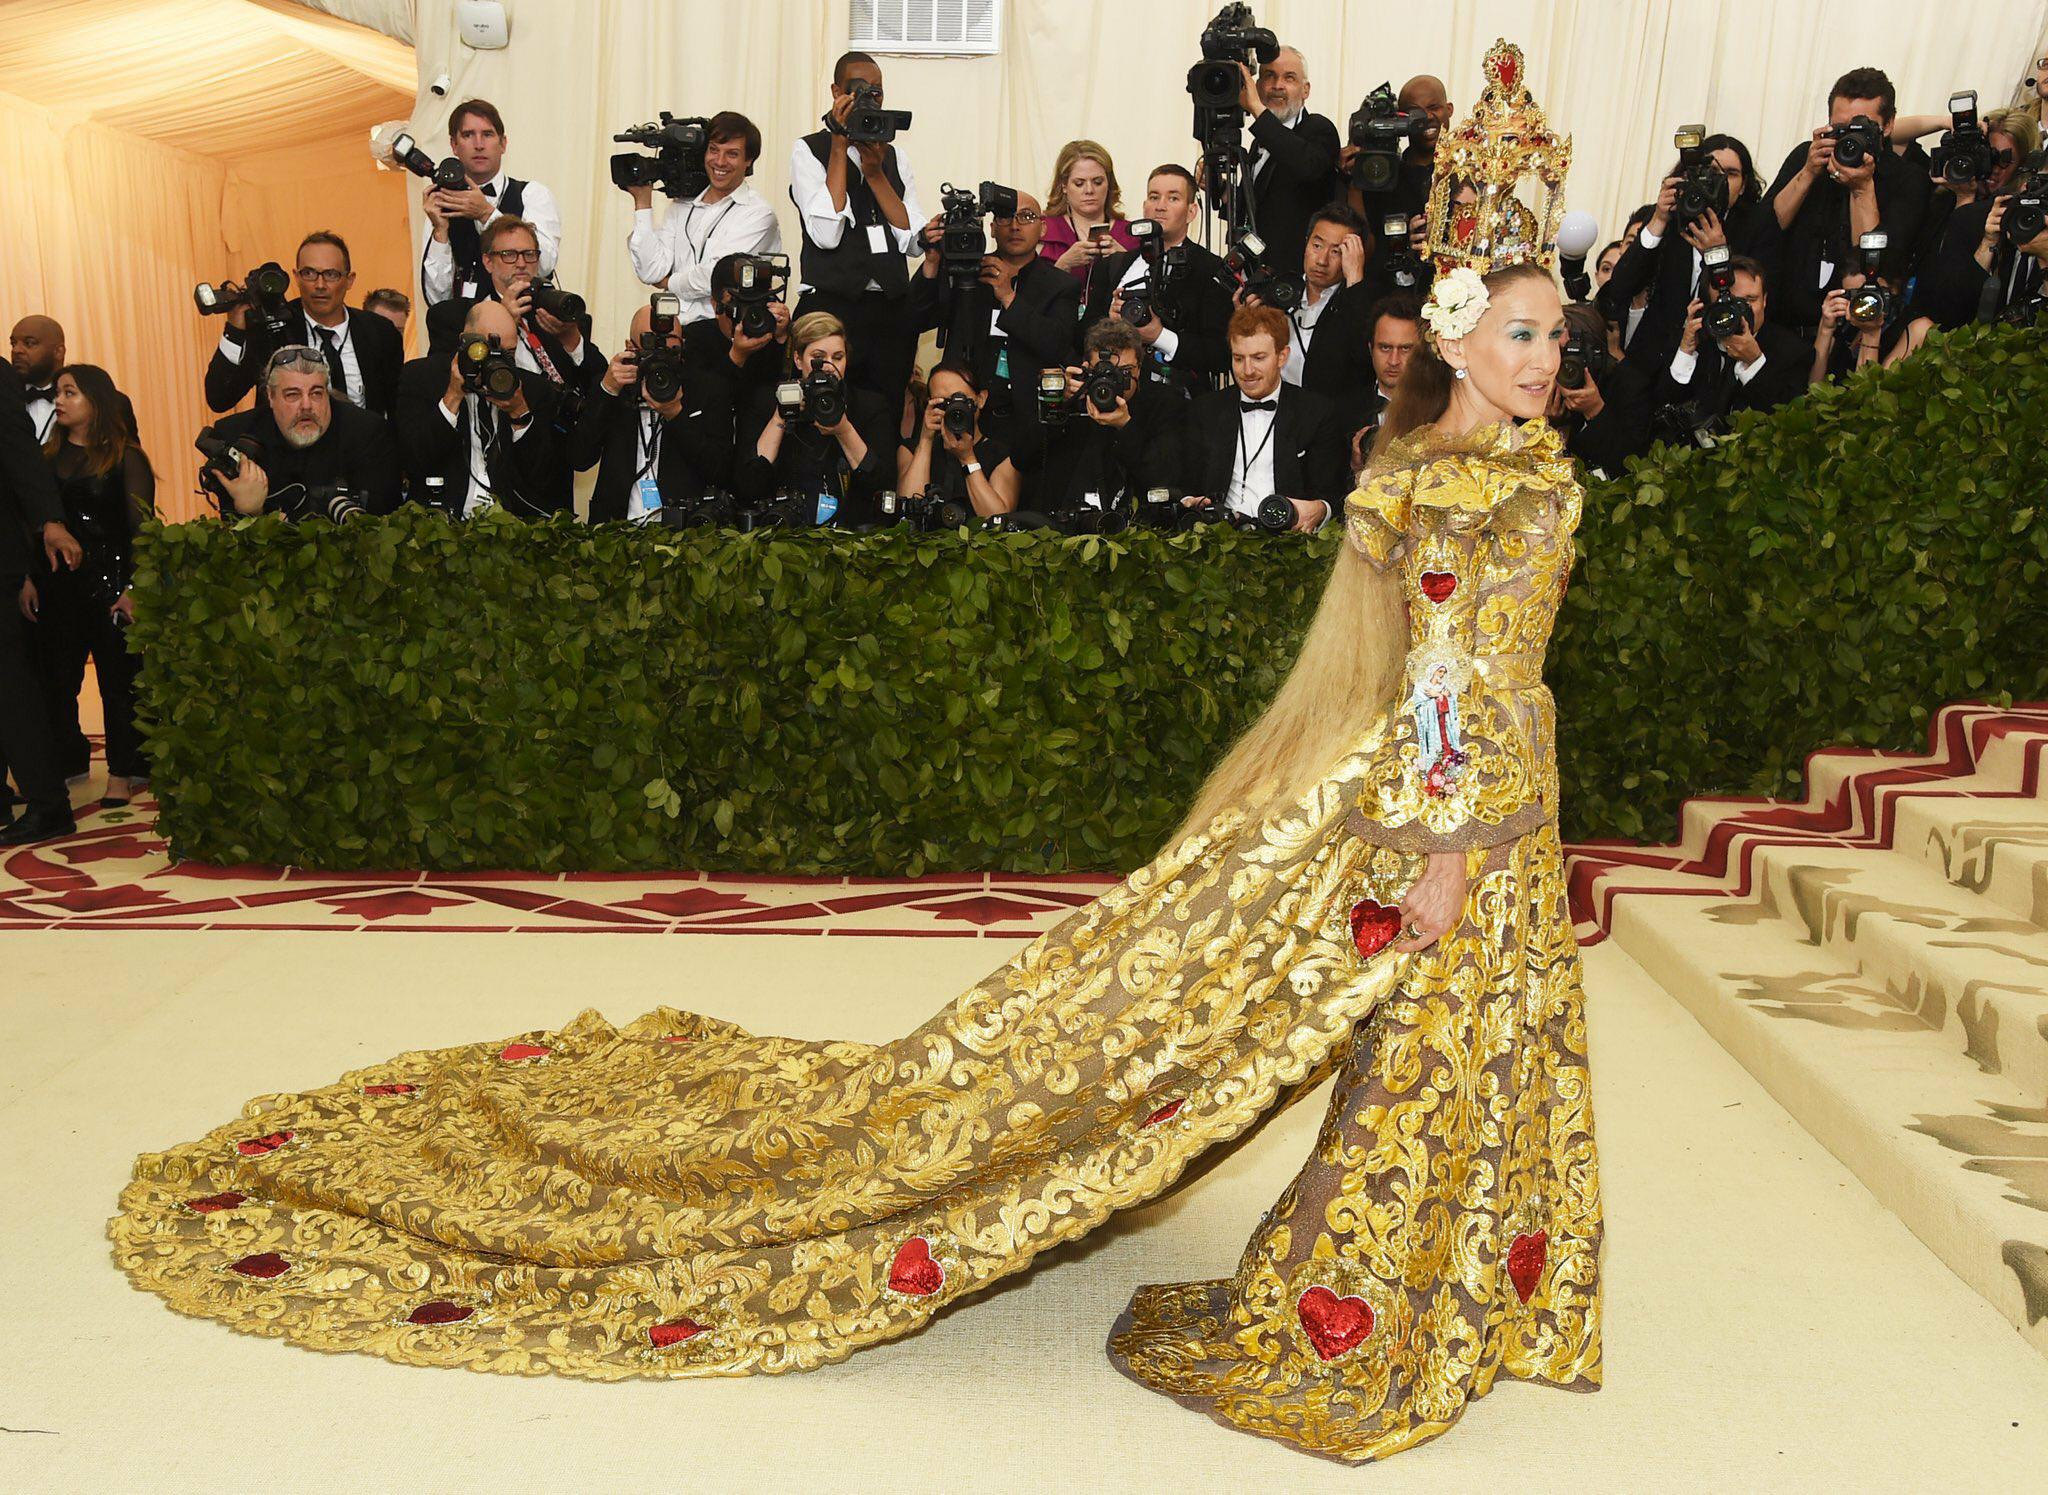 sarah-jessica-parker-met-gala-heavenly-bodies-fashion-catholic-imagination-red-carpet-best-dressed.jpg